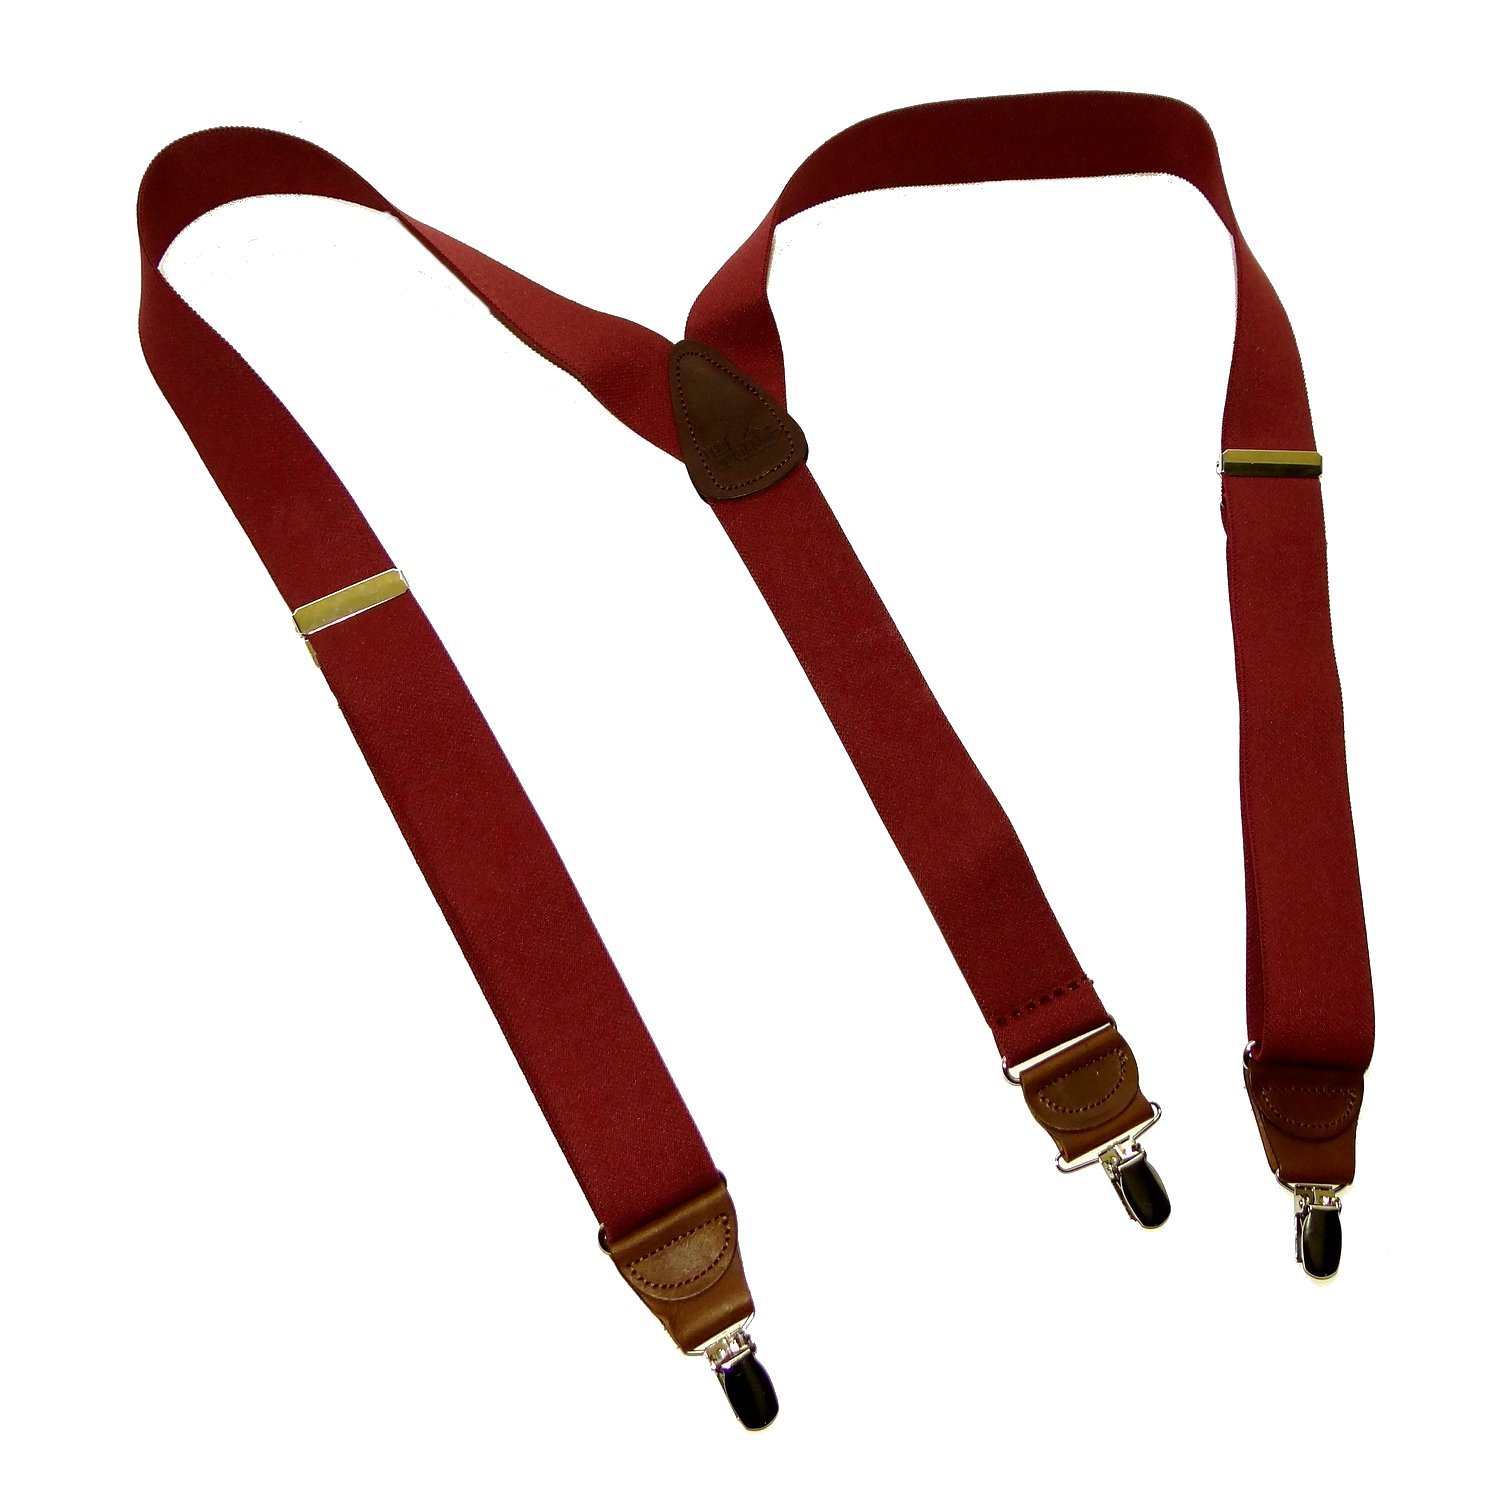 HoldUp Suspender Companys dark Merlot Burgundy Y-back style suspenders with Brown leather crosspatch and No-slip Nickel plated clips